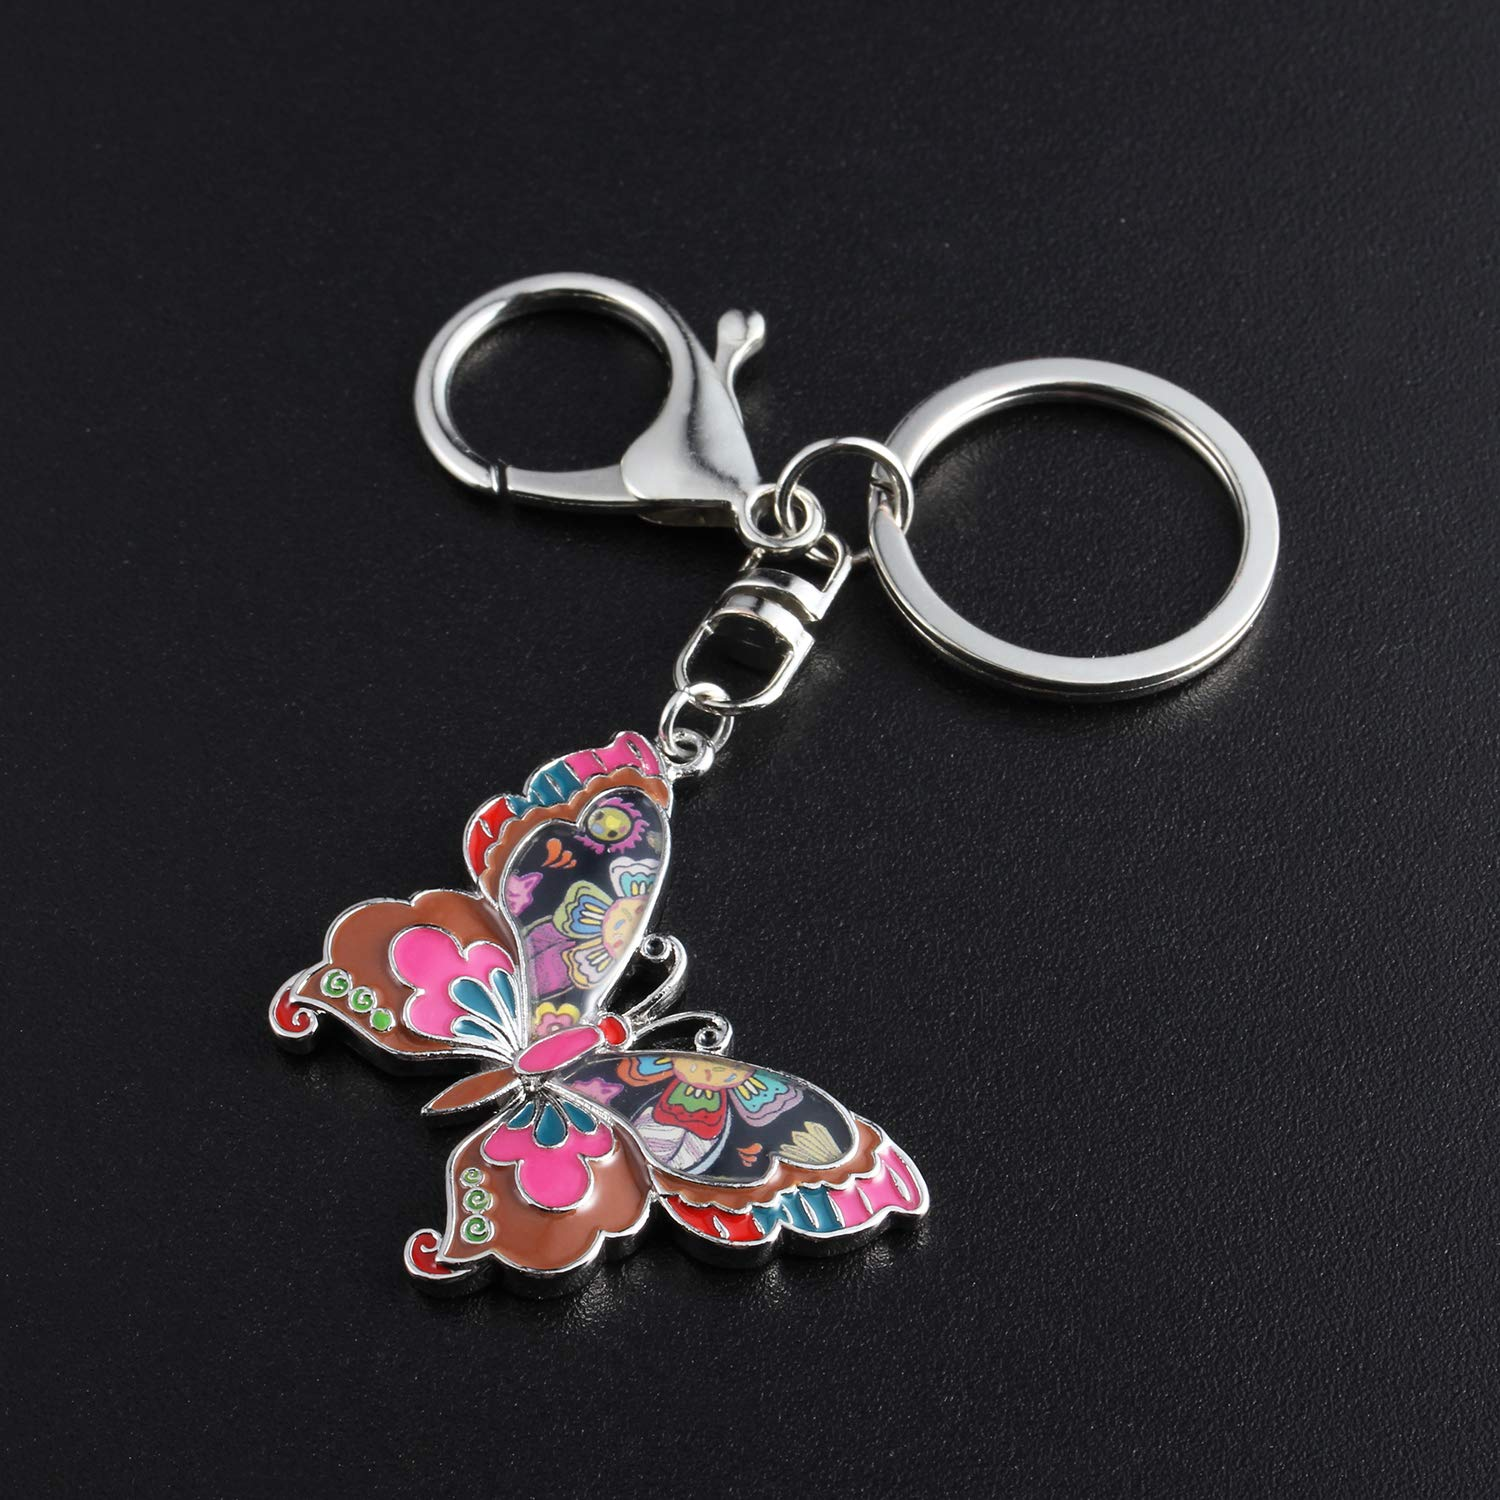 Luckeyui Multicolor Butterfly Keychains Women Unique Colorful Enamel Insect Keyring Gifts by Luckeyui (Image #2)